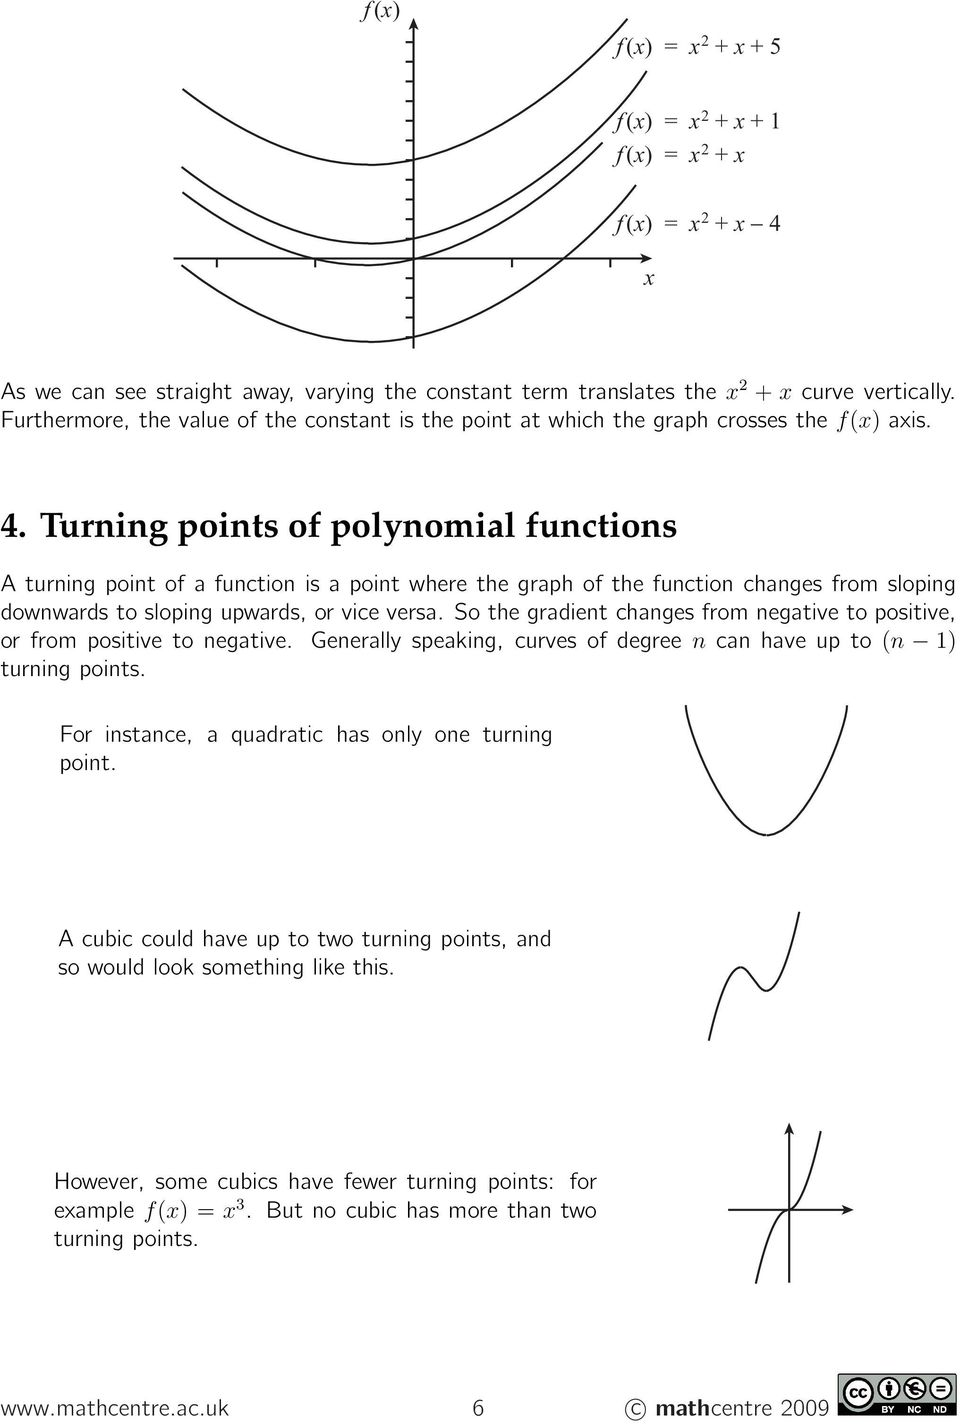 Turning points of polynomial functions Aturningpointofafunctionisapointwherethegraphofthefunctionchangesfromsloping downwards to sloping upwards, or vice versa.